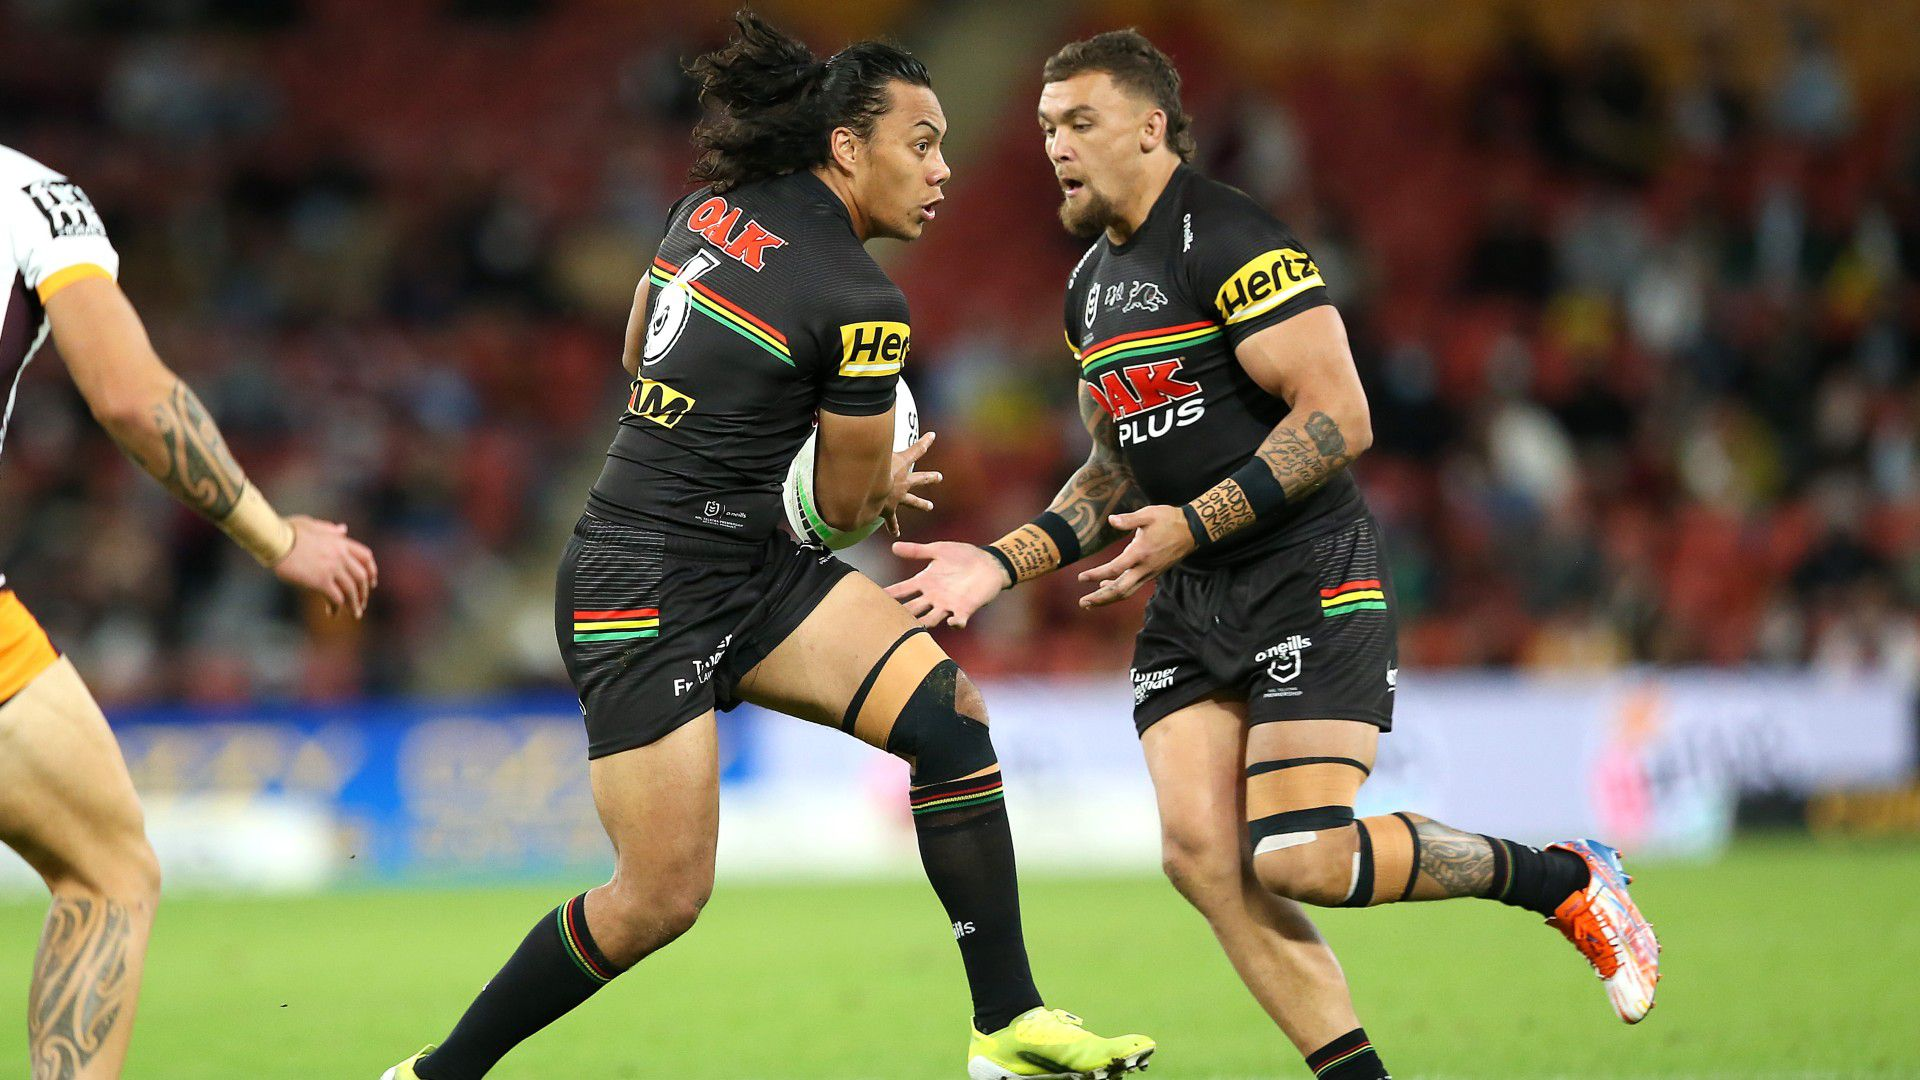 EXCLUSIVE: Penrith Panthers form slump understandable, says Peter Sterling